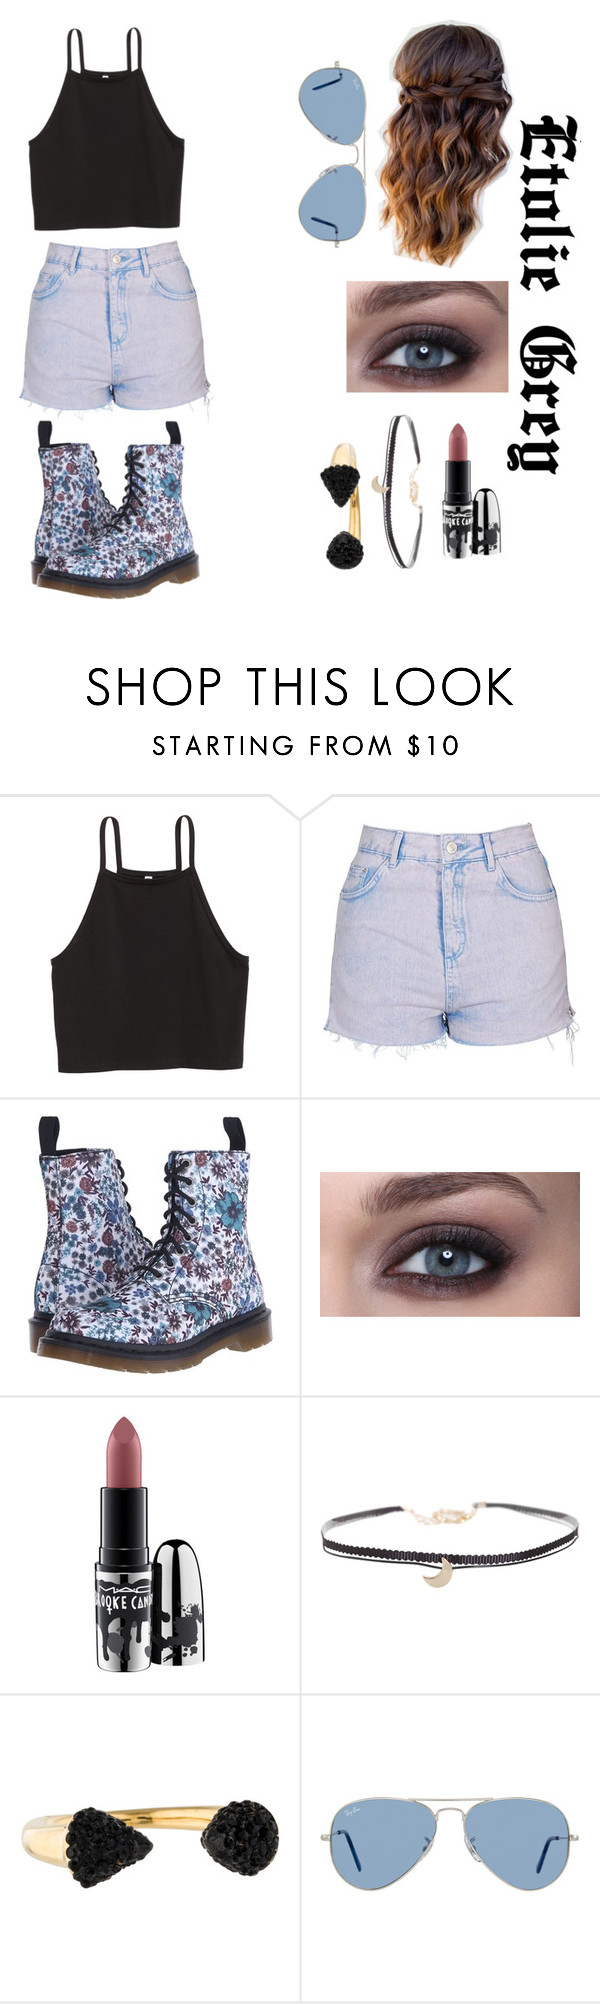 """""""Girls Day Out"""" by fallensunangel ❤ liked on Polyvore featuring Topshop, Dr. Martens, MAC Cosmetics, Humble Chic, Michael Kors and Ray-Ban"""